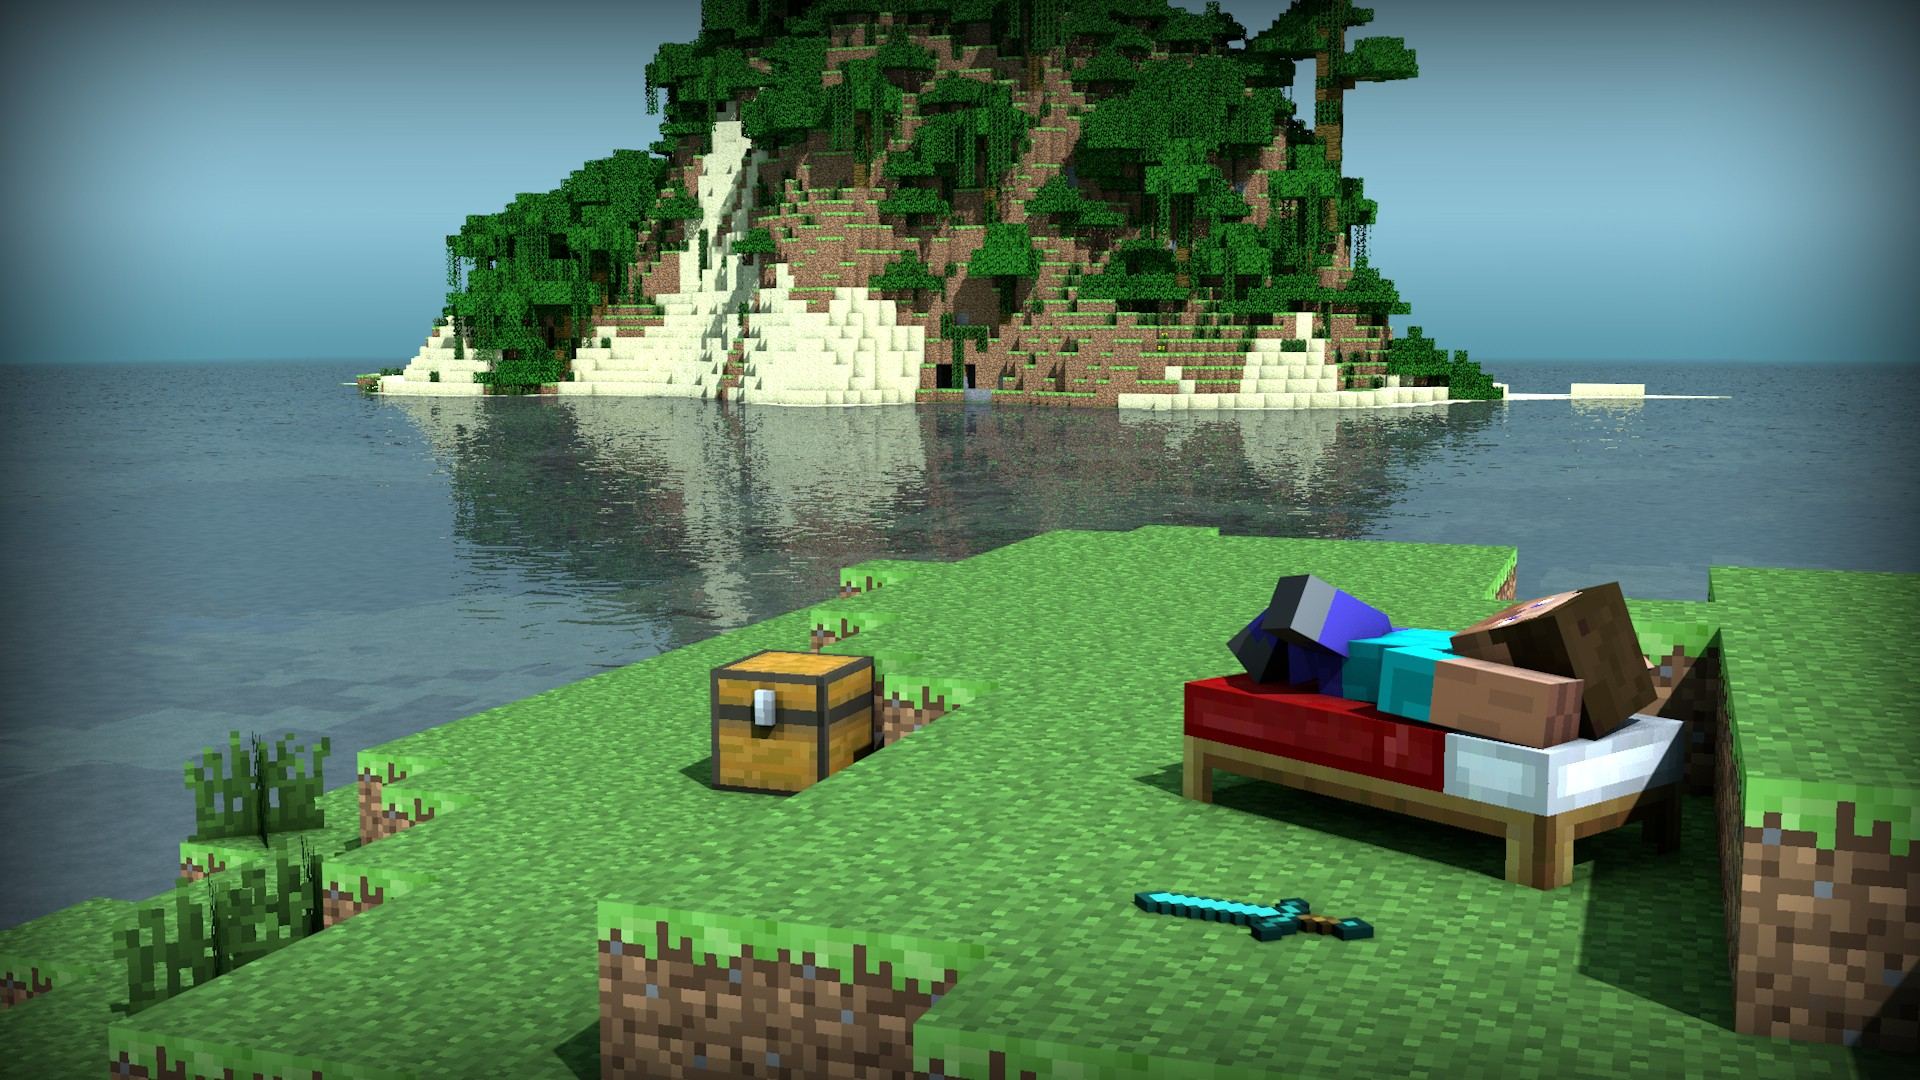 Minecraft wallpaper | 1920x1080 | #42899